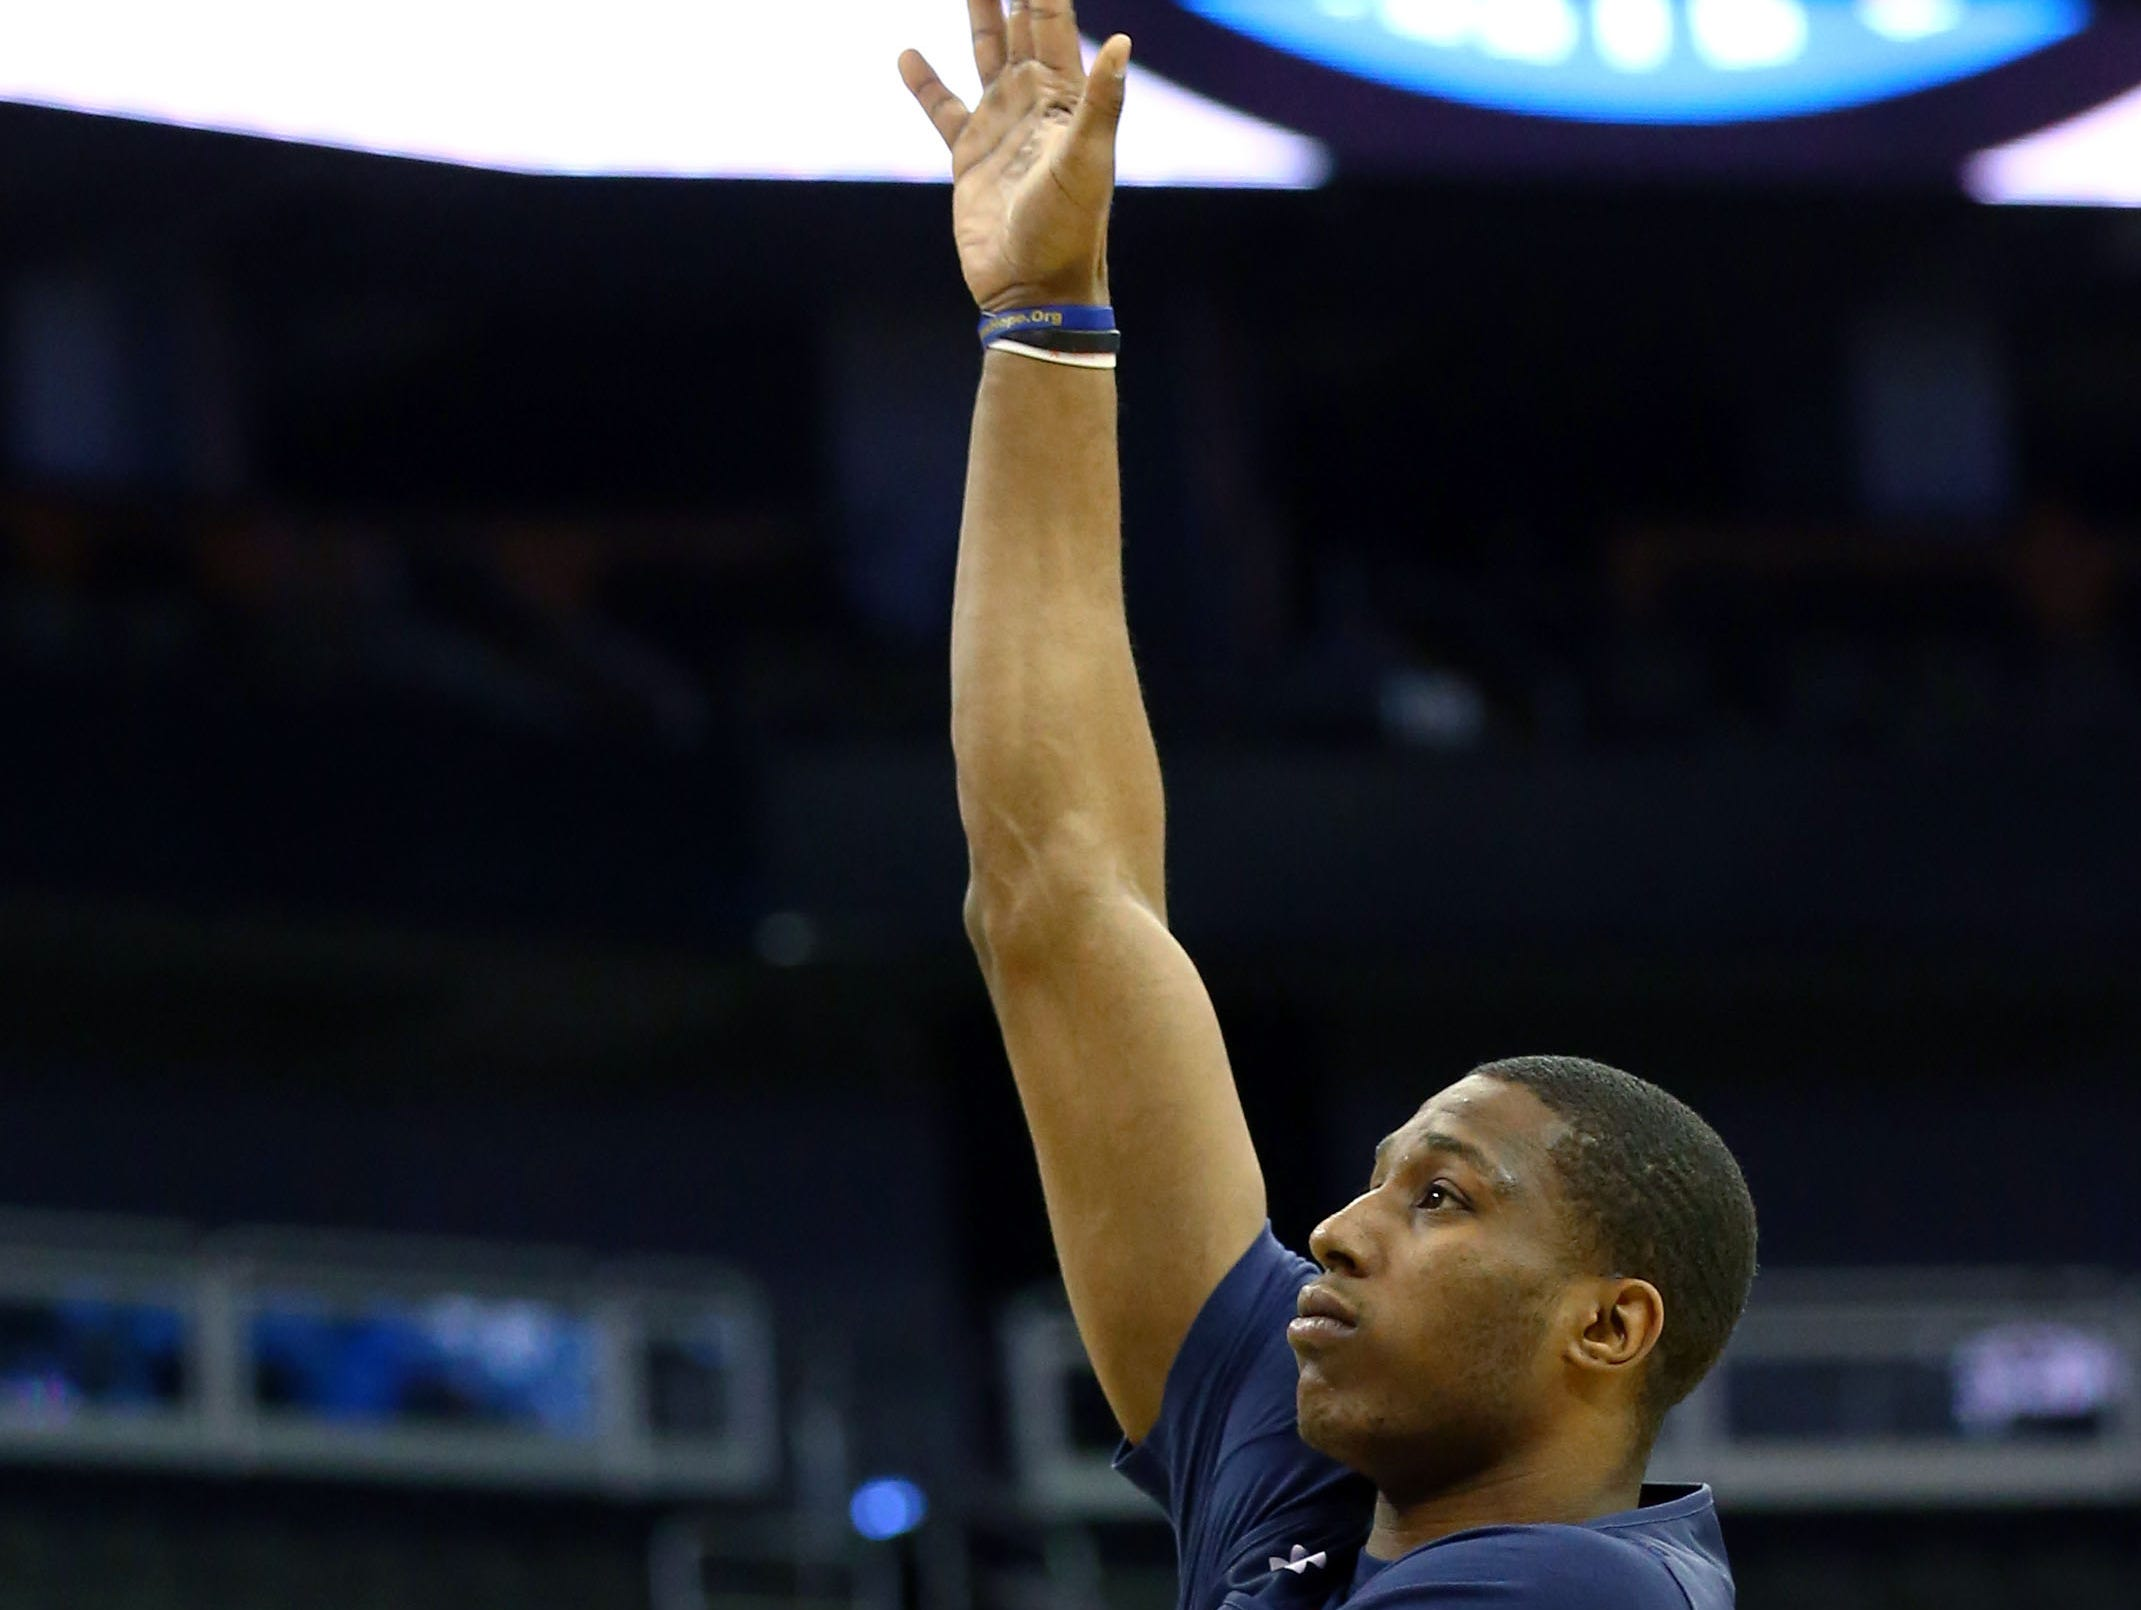 Mar 28, 2019; Kansas City, MO, United States;  Auburn Tigers forward Horace Spencer (0) during practice for the midwest regional of the 2019 NCAA Tournament at Sprint Center. Mandatory Credit: Jay Biggerstaff-USA TODAY Sports